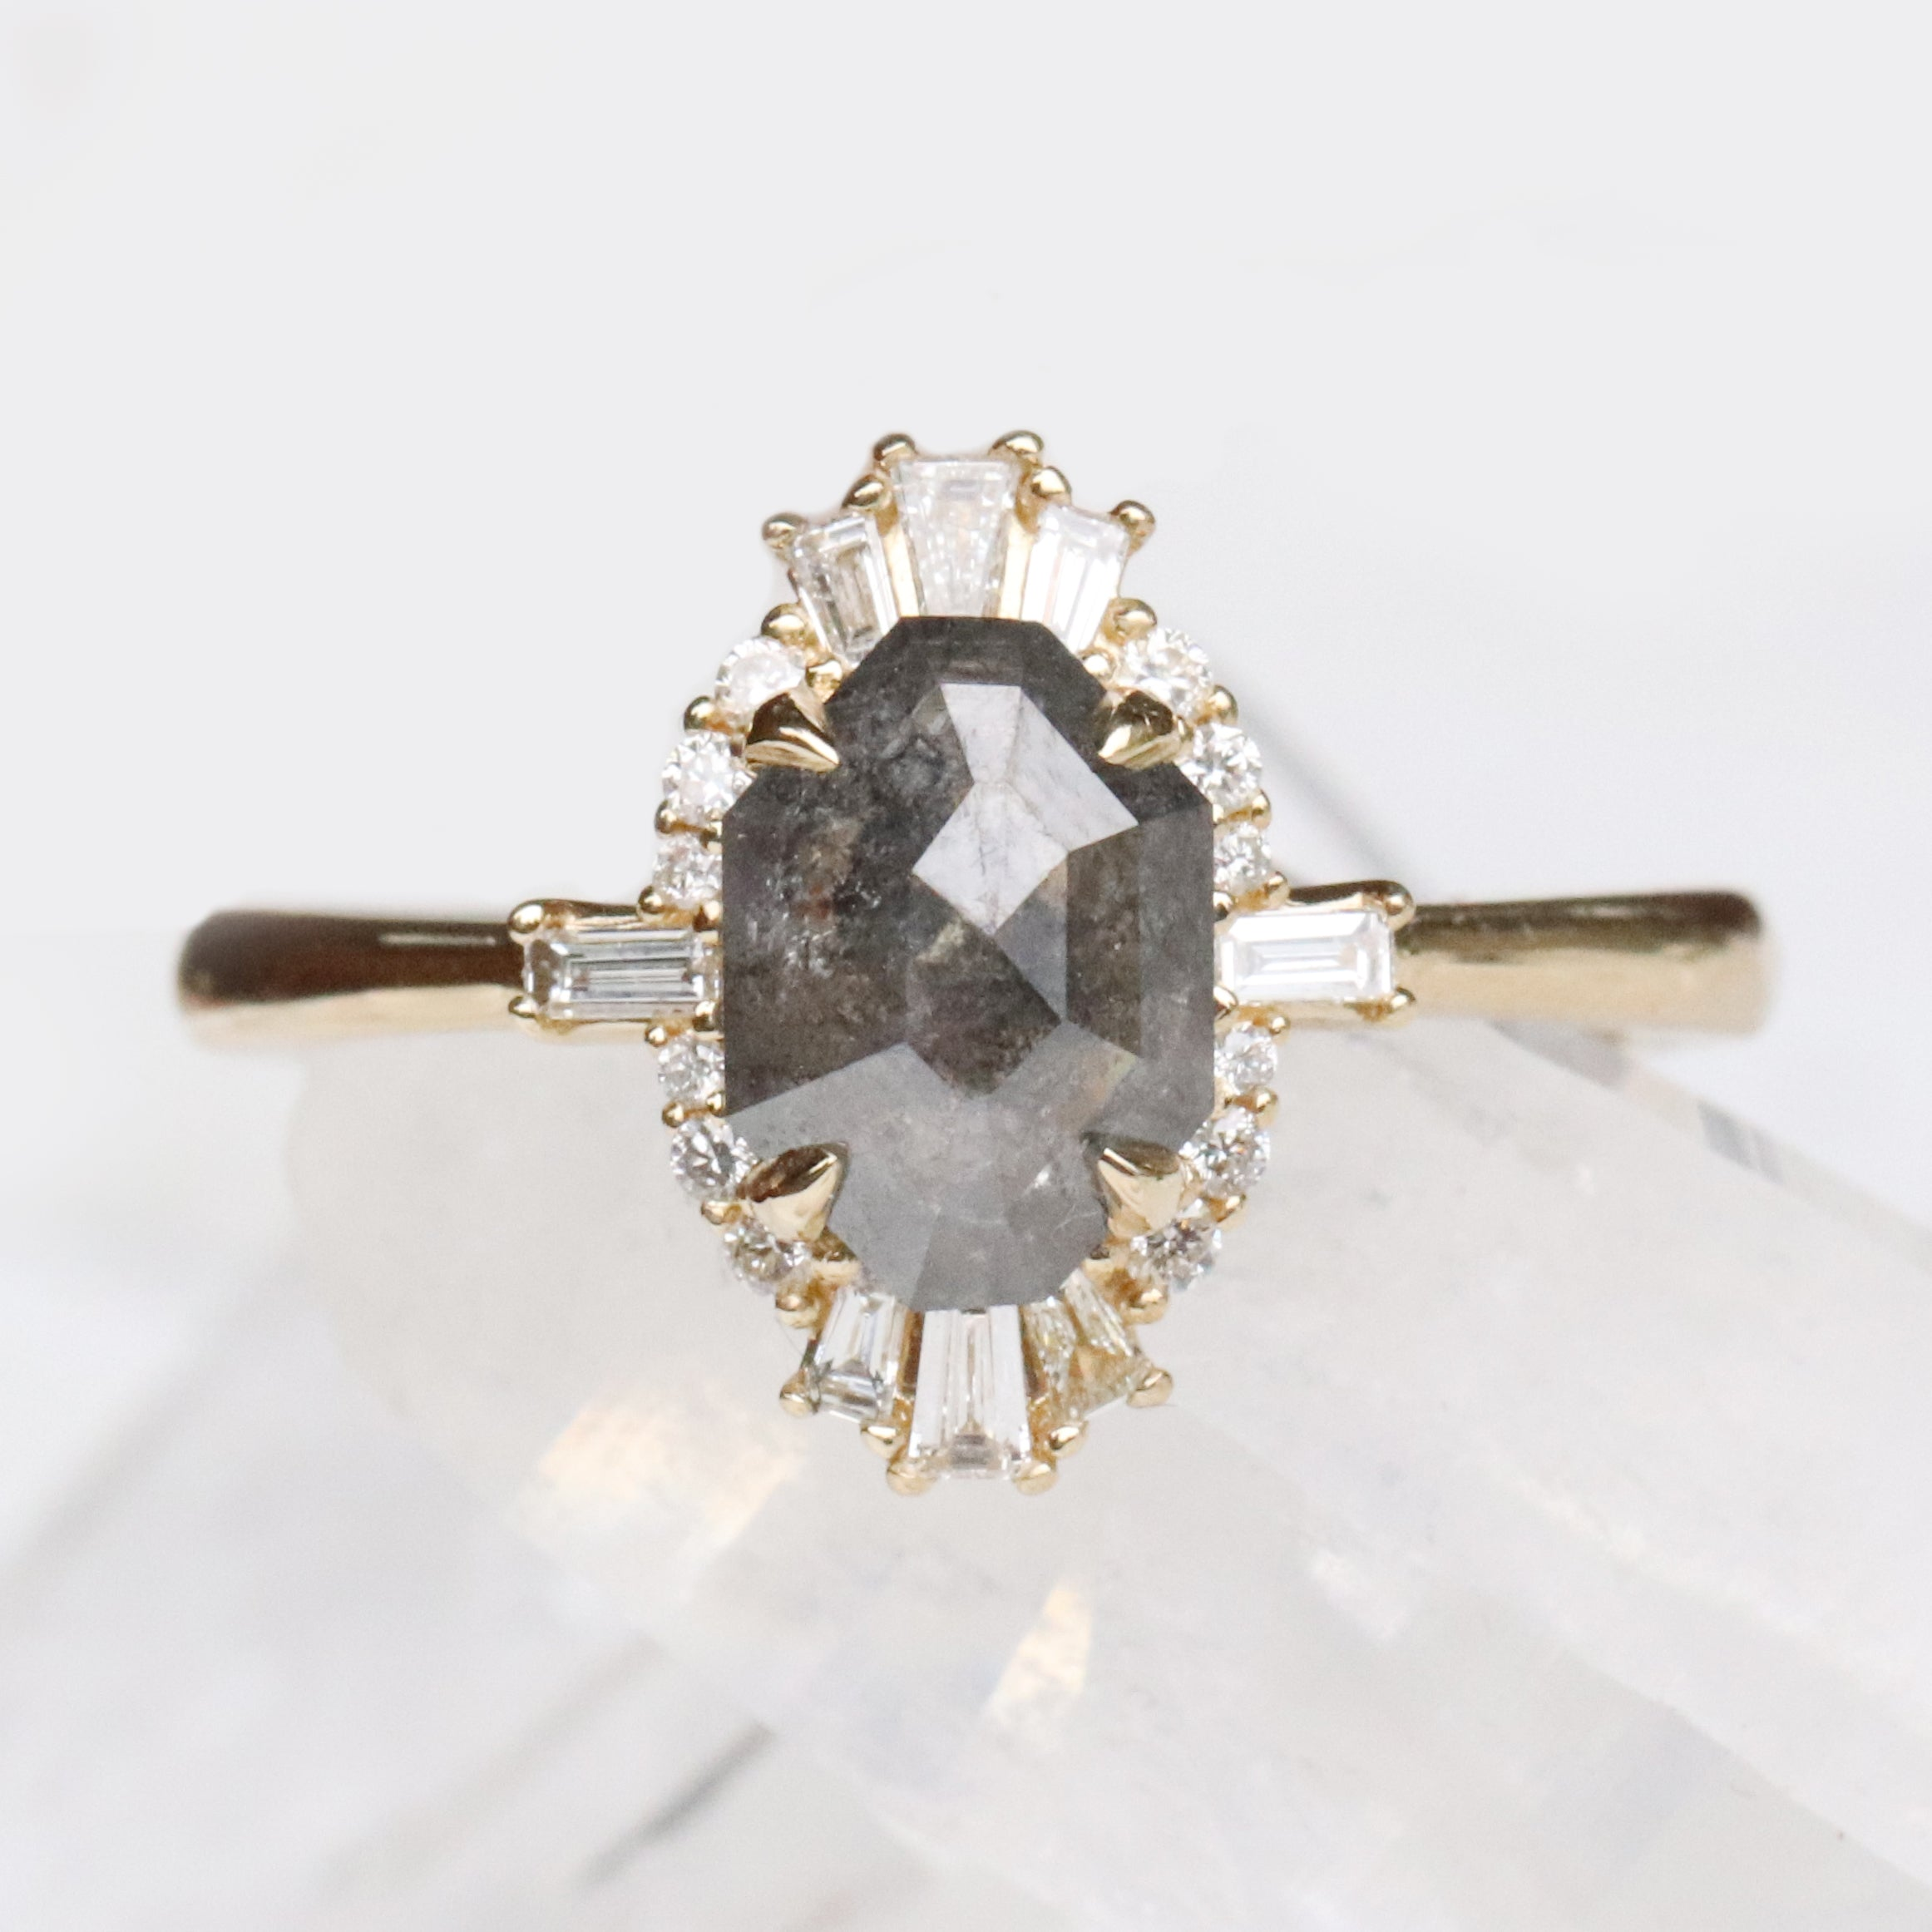 samantha - Ophelia Ring with 1.35 carat Celestial Diamond in 14k Yellow Gold - Ready to Size and Ship - Salt & Pepper Celestial Diamond Engagement Rings and Wedding Bands  by Midwinter Co.